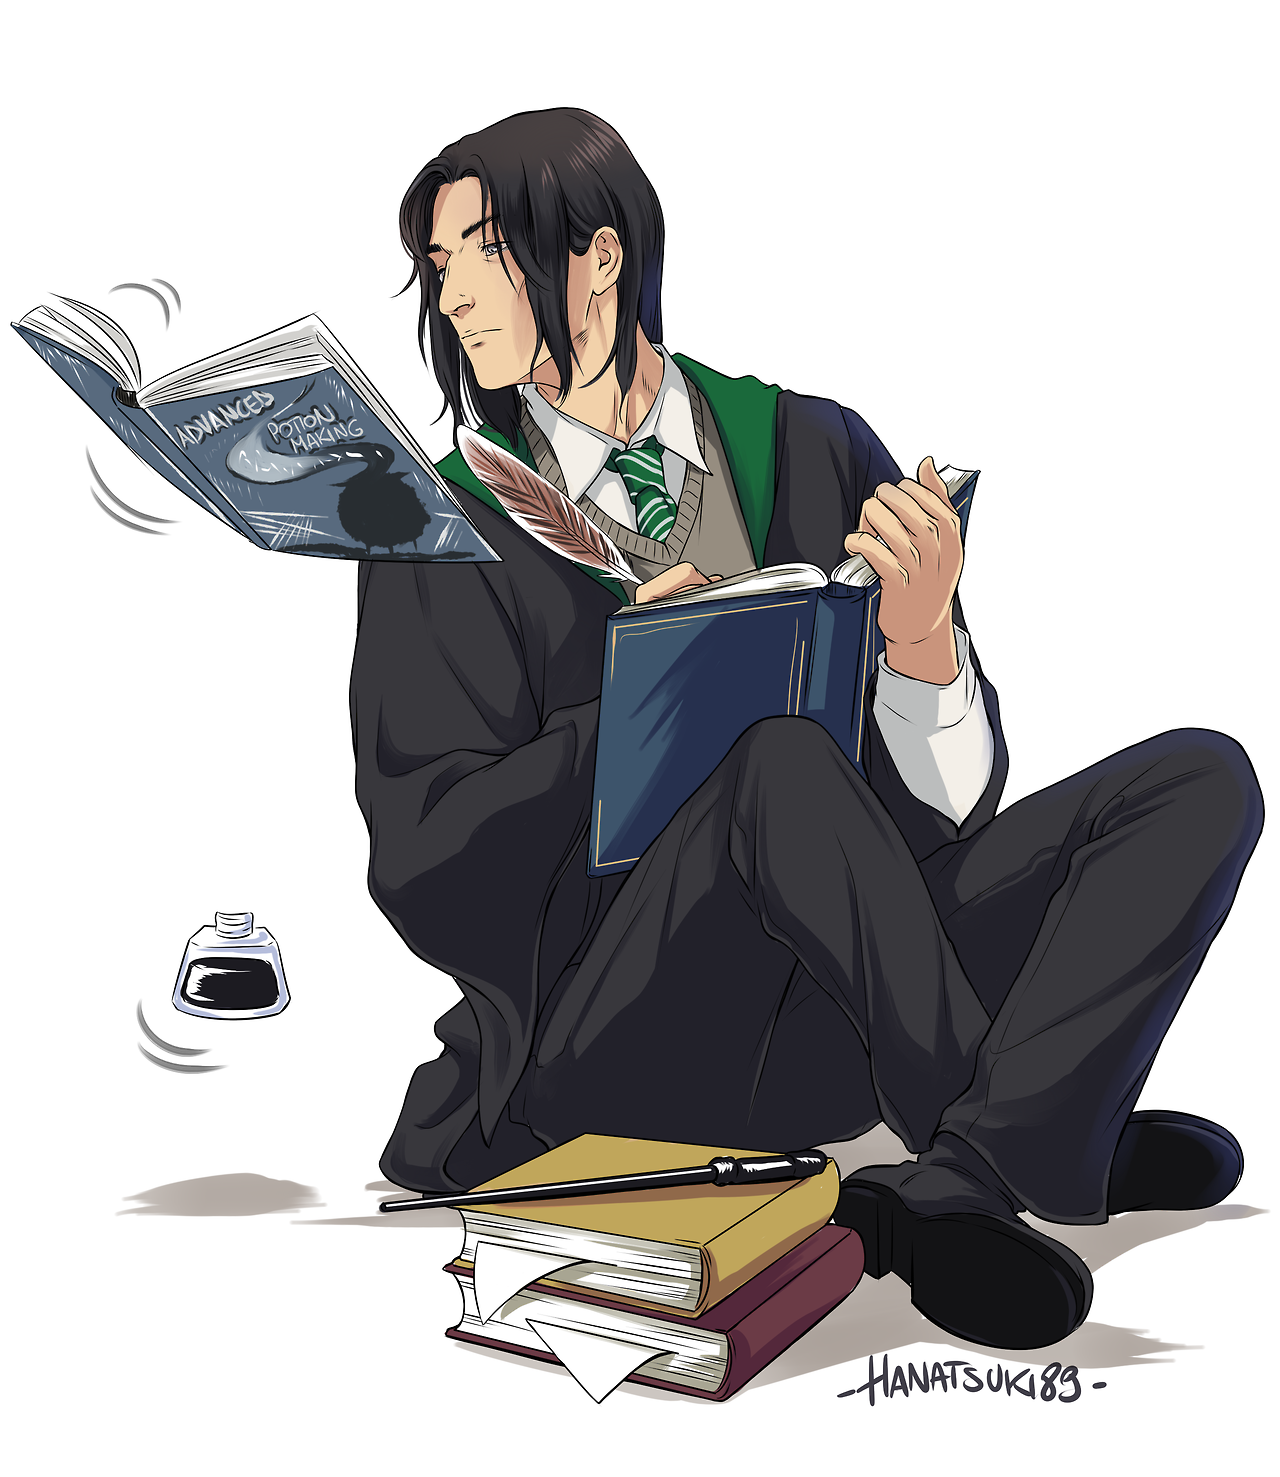 Severus Snape. This is strange... I'm not entirely sure